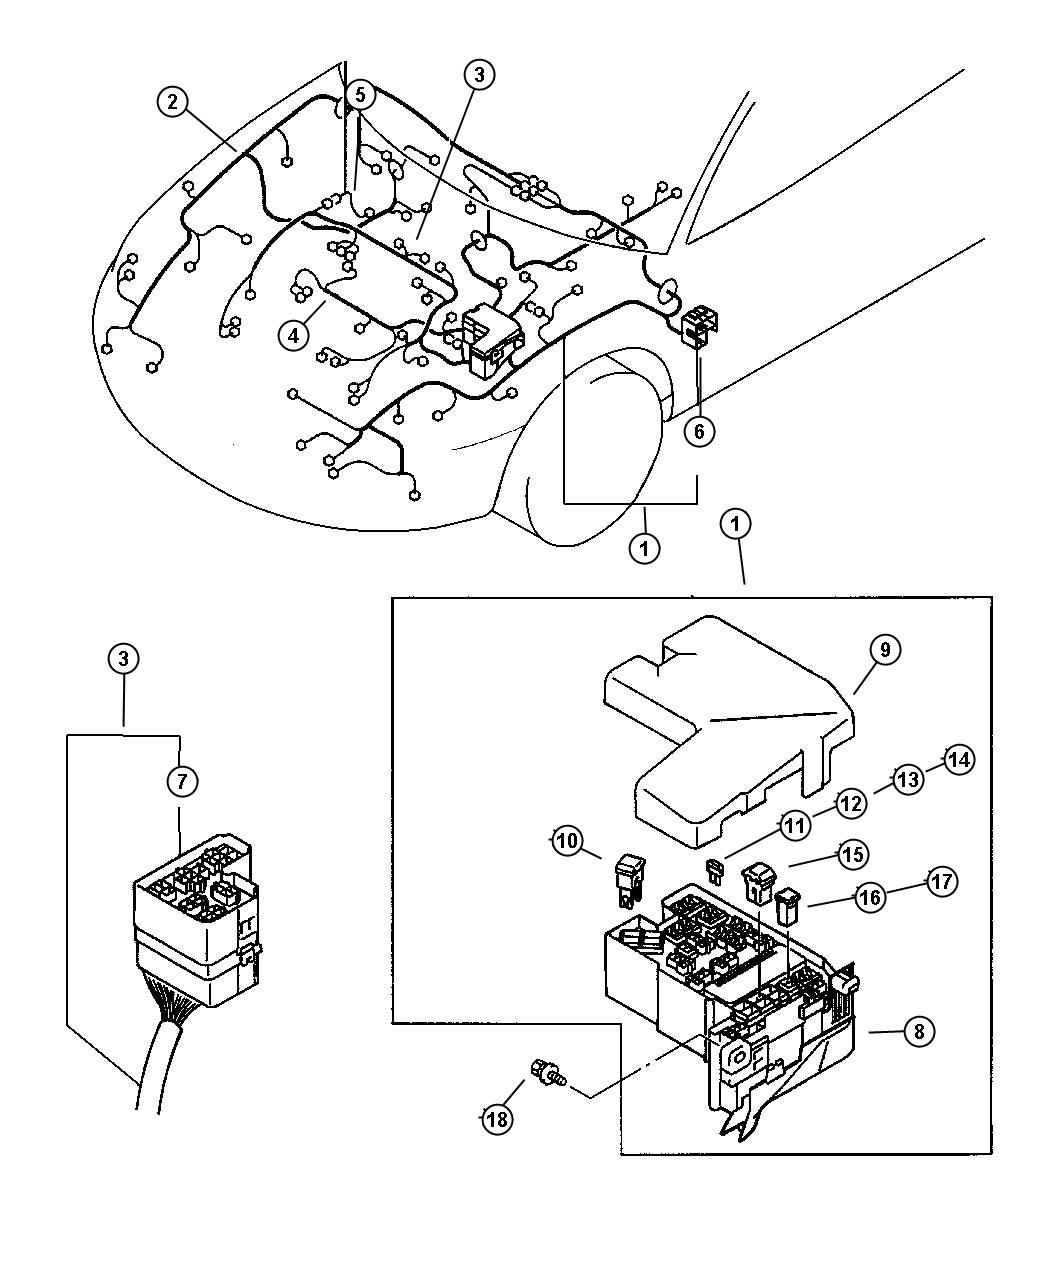 1997 chrysler sebring engine diagram